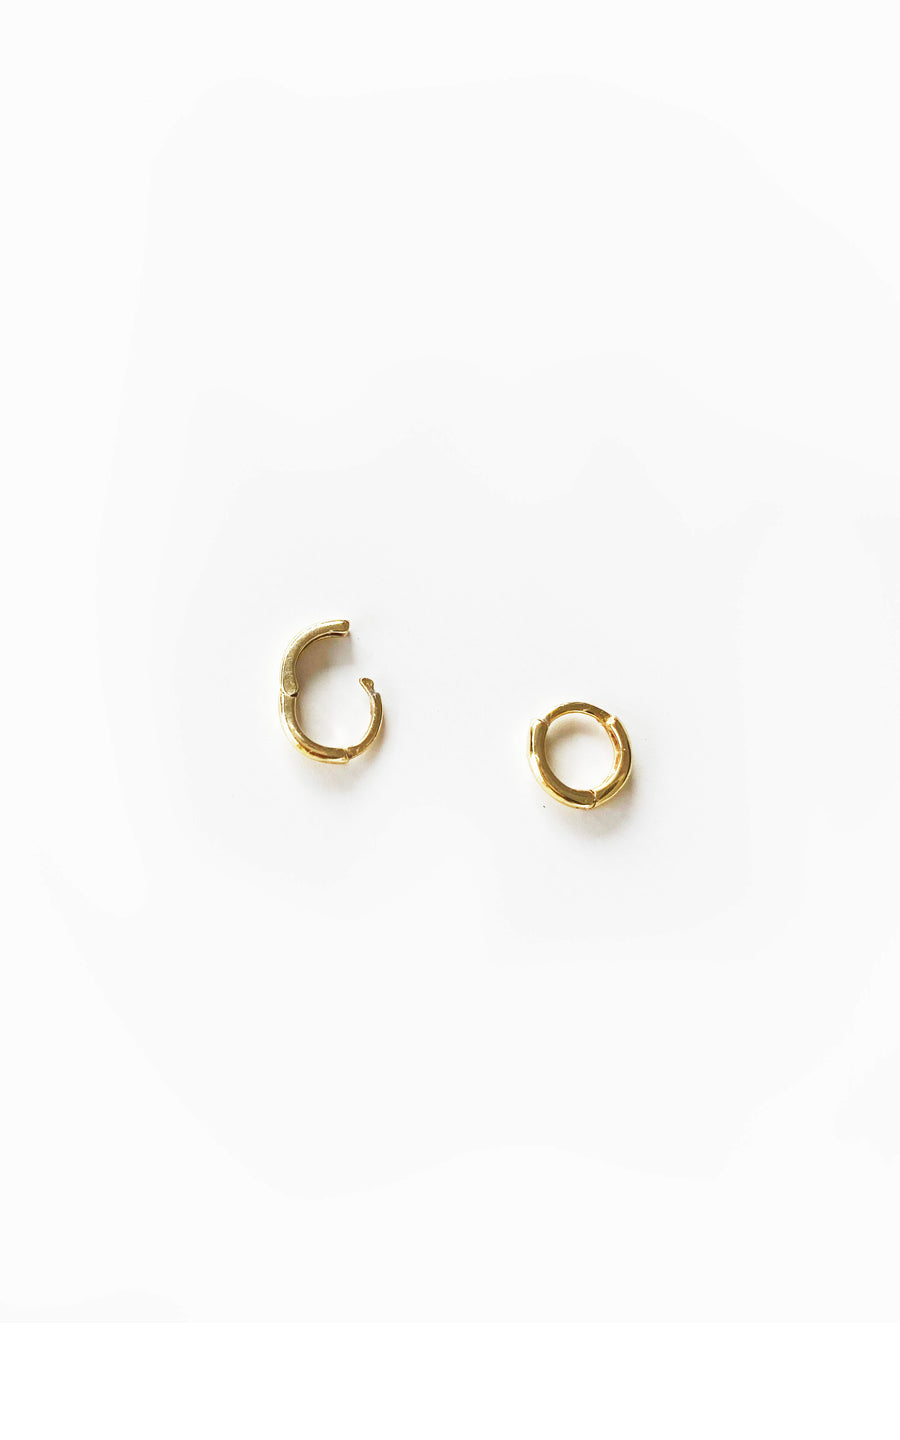 Tiny Tiny Gold Hoops